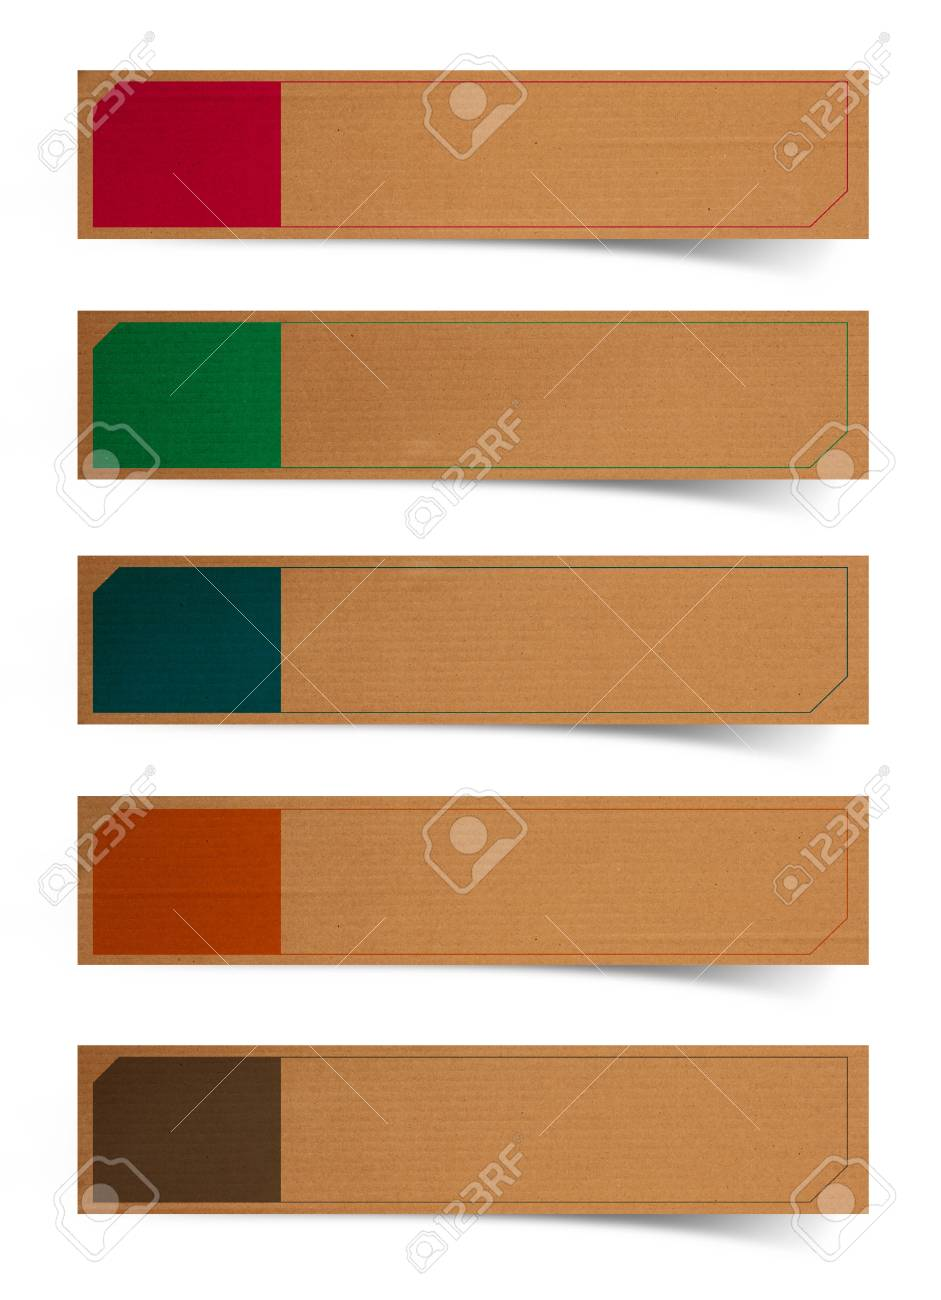 Cardboard paper banners / stickers / badges with print decorations, isolated on white background (Save Paths For design work) Stock Photo - 17618269